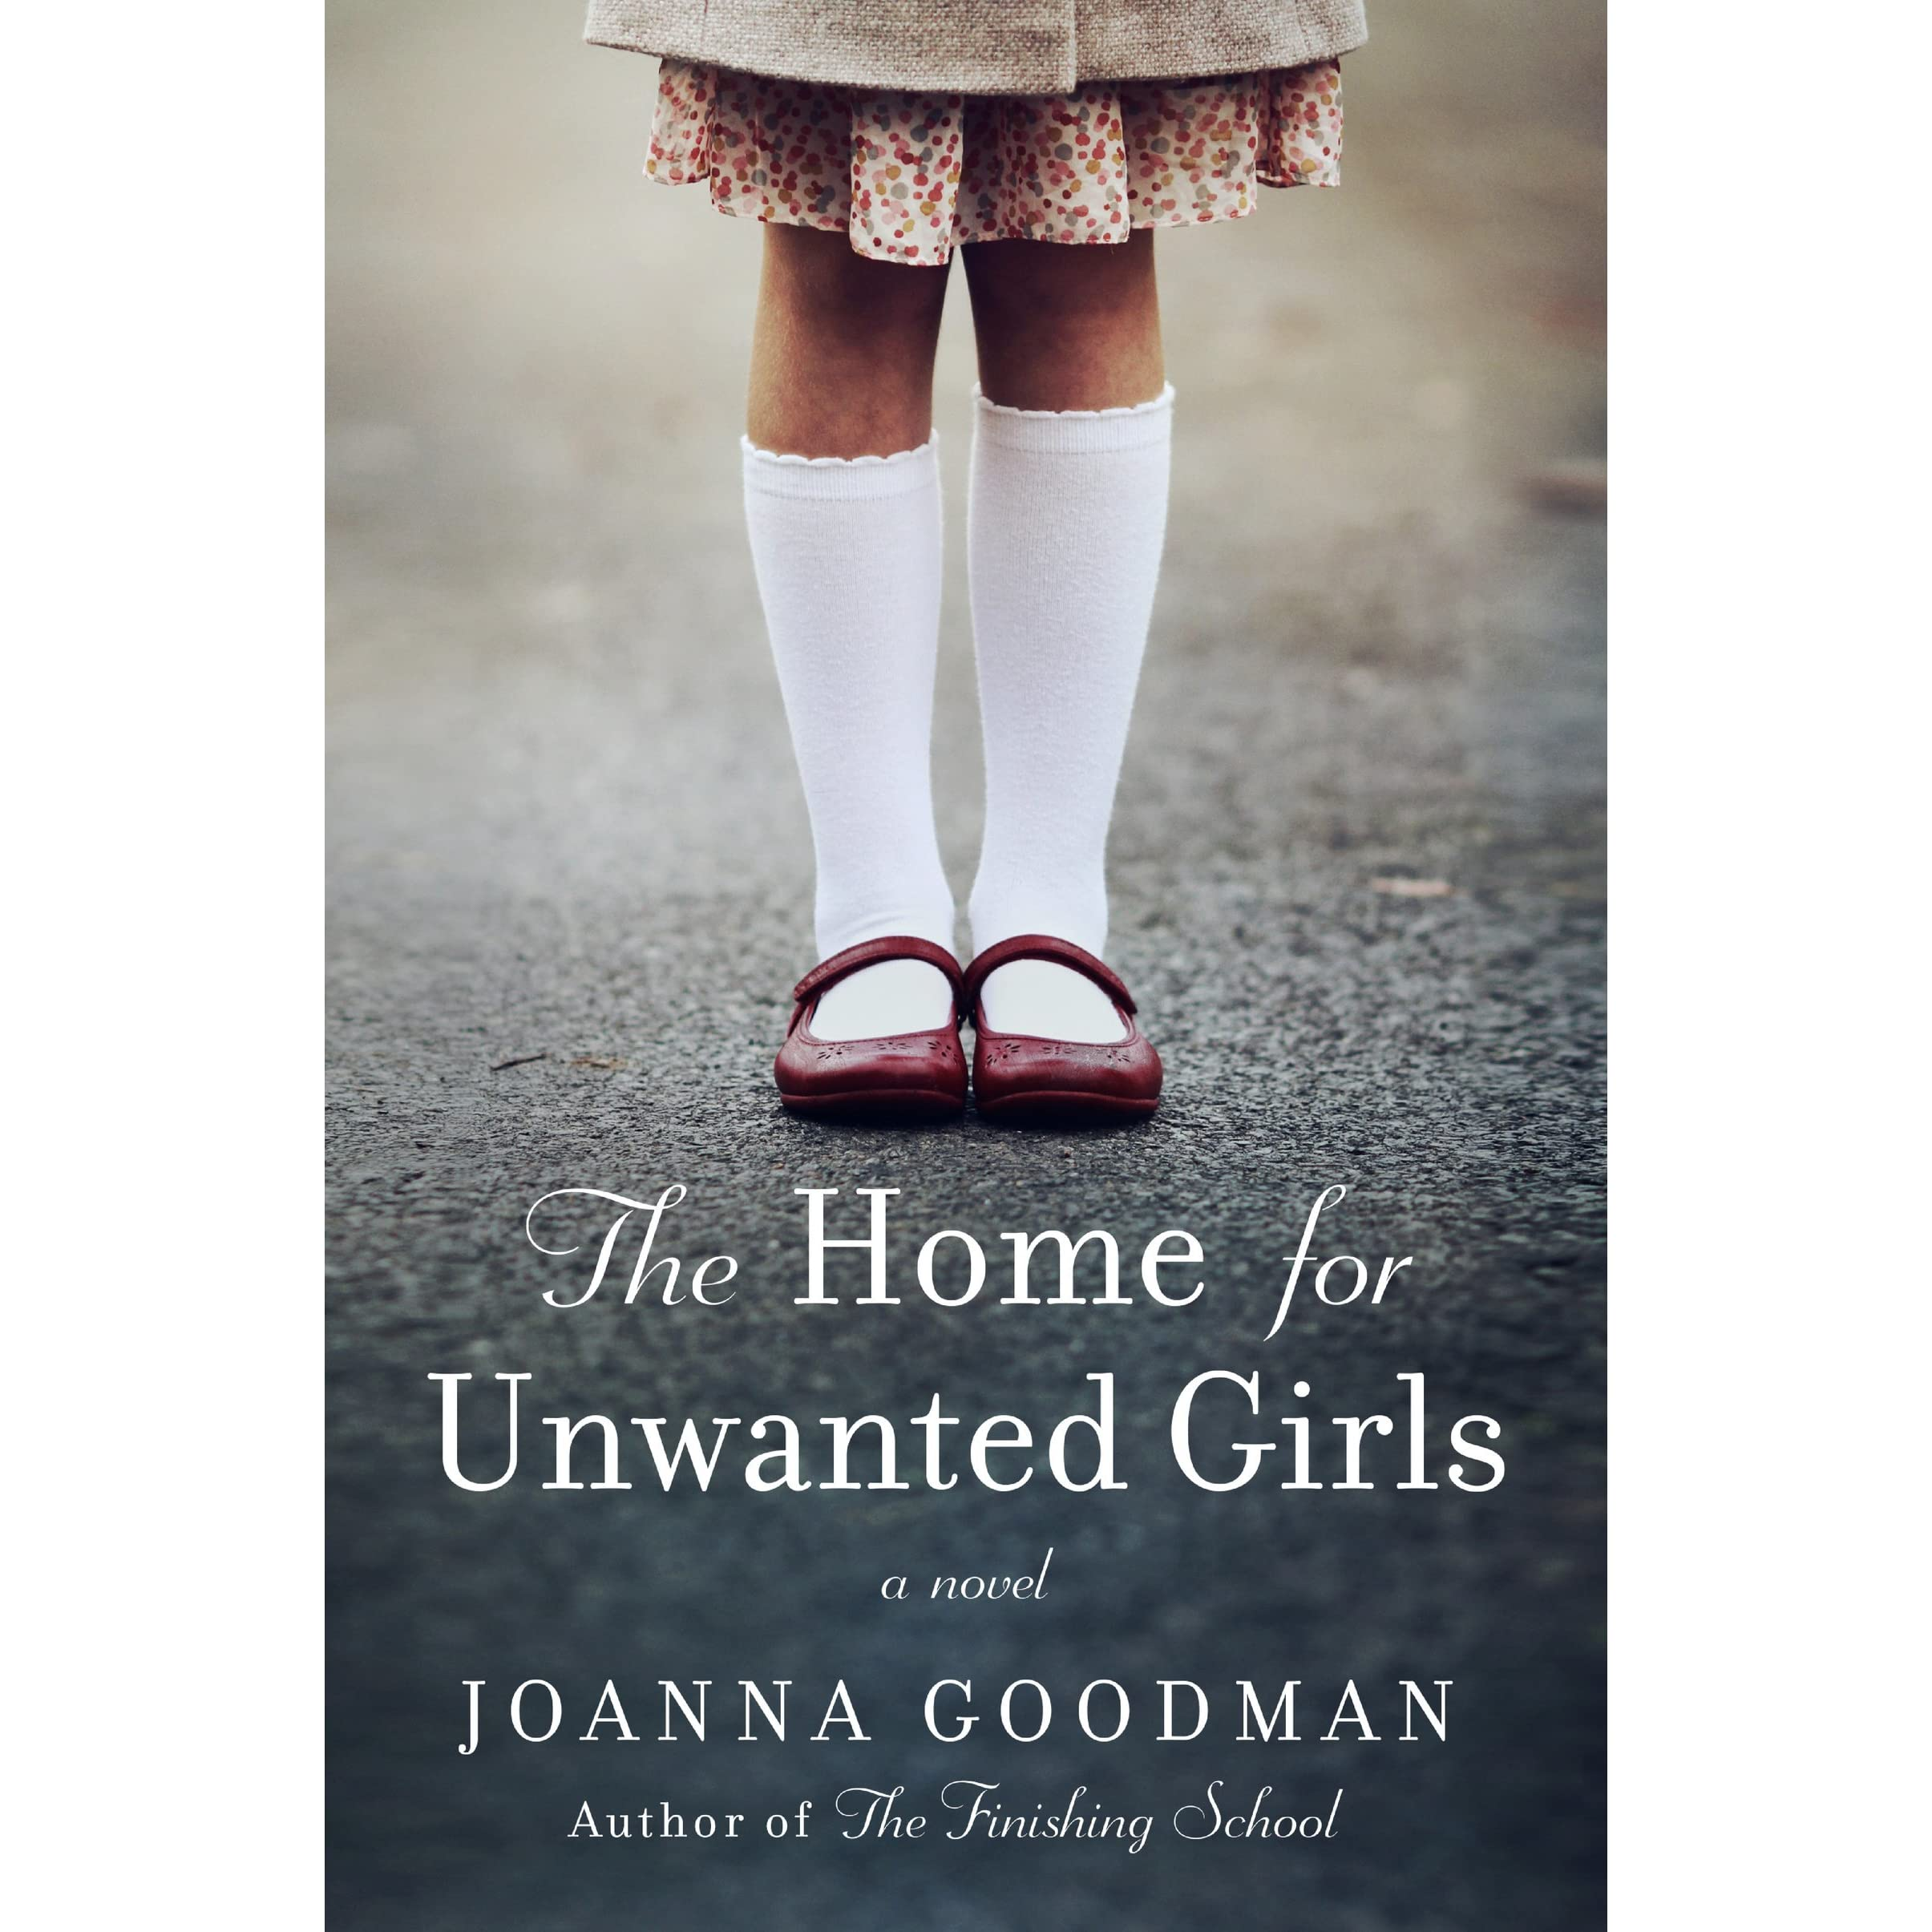 d3d6acea758c The Home for Unwanted Girls by Joanna Goodman